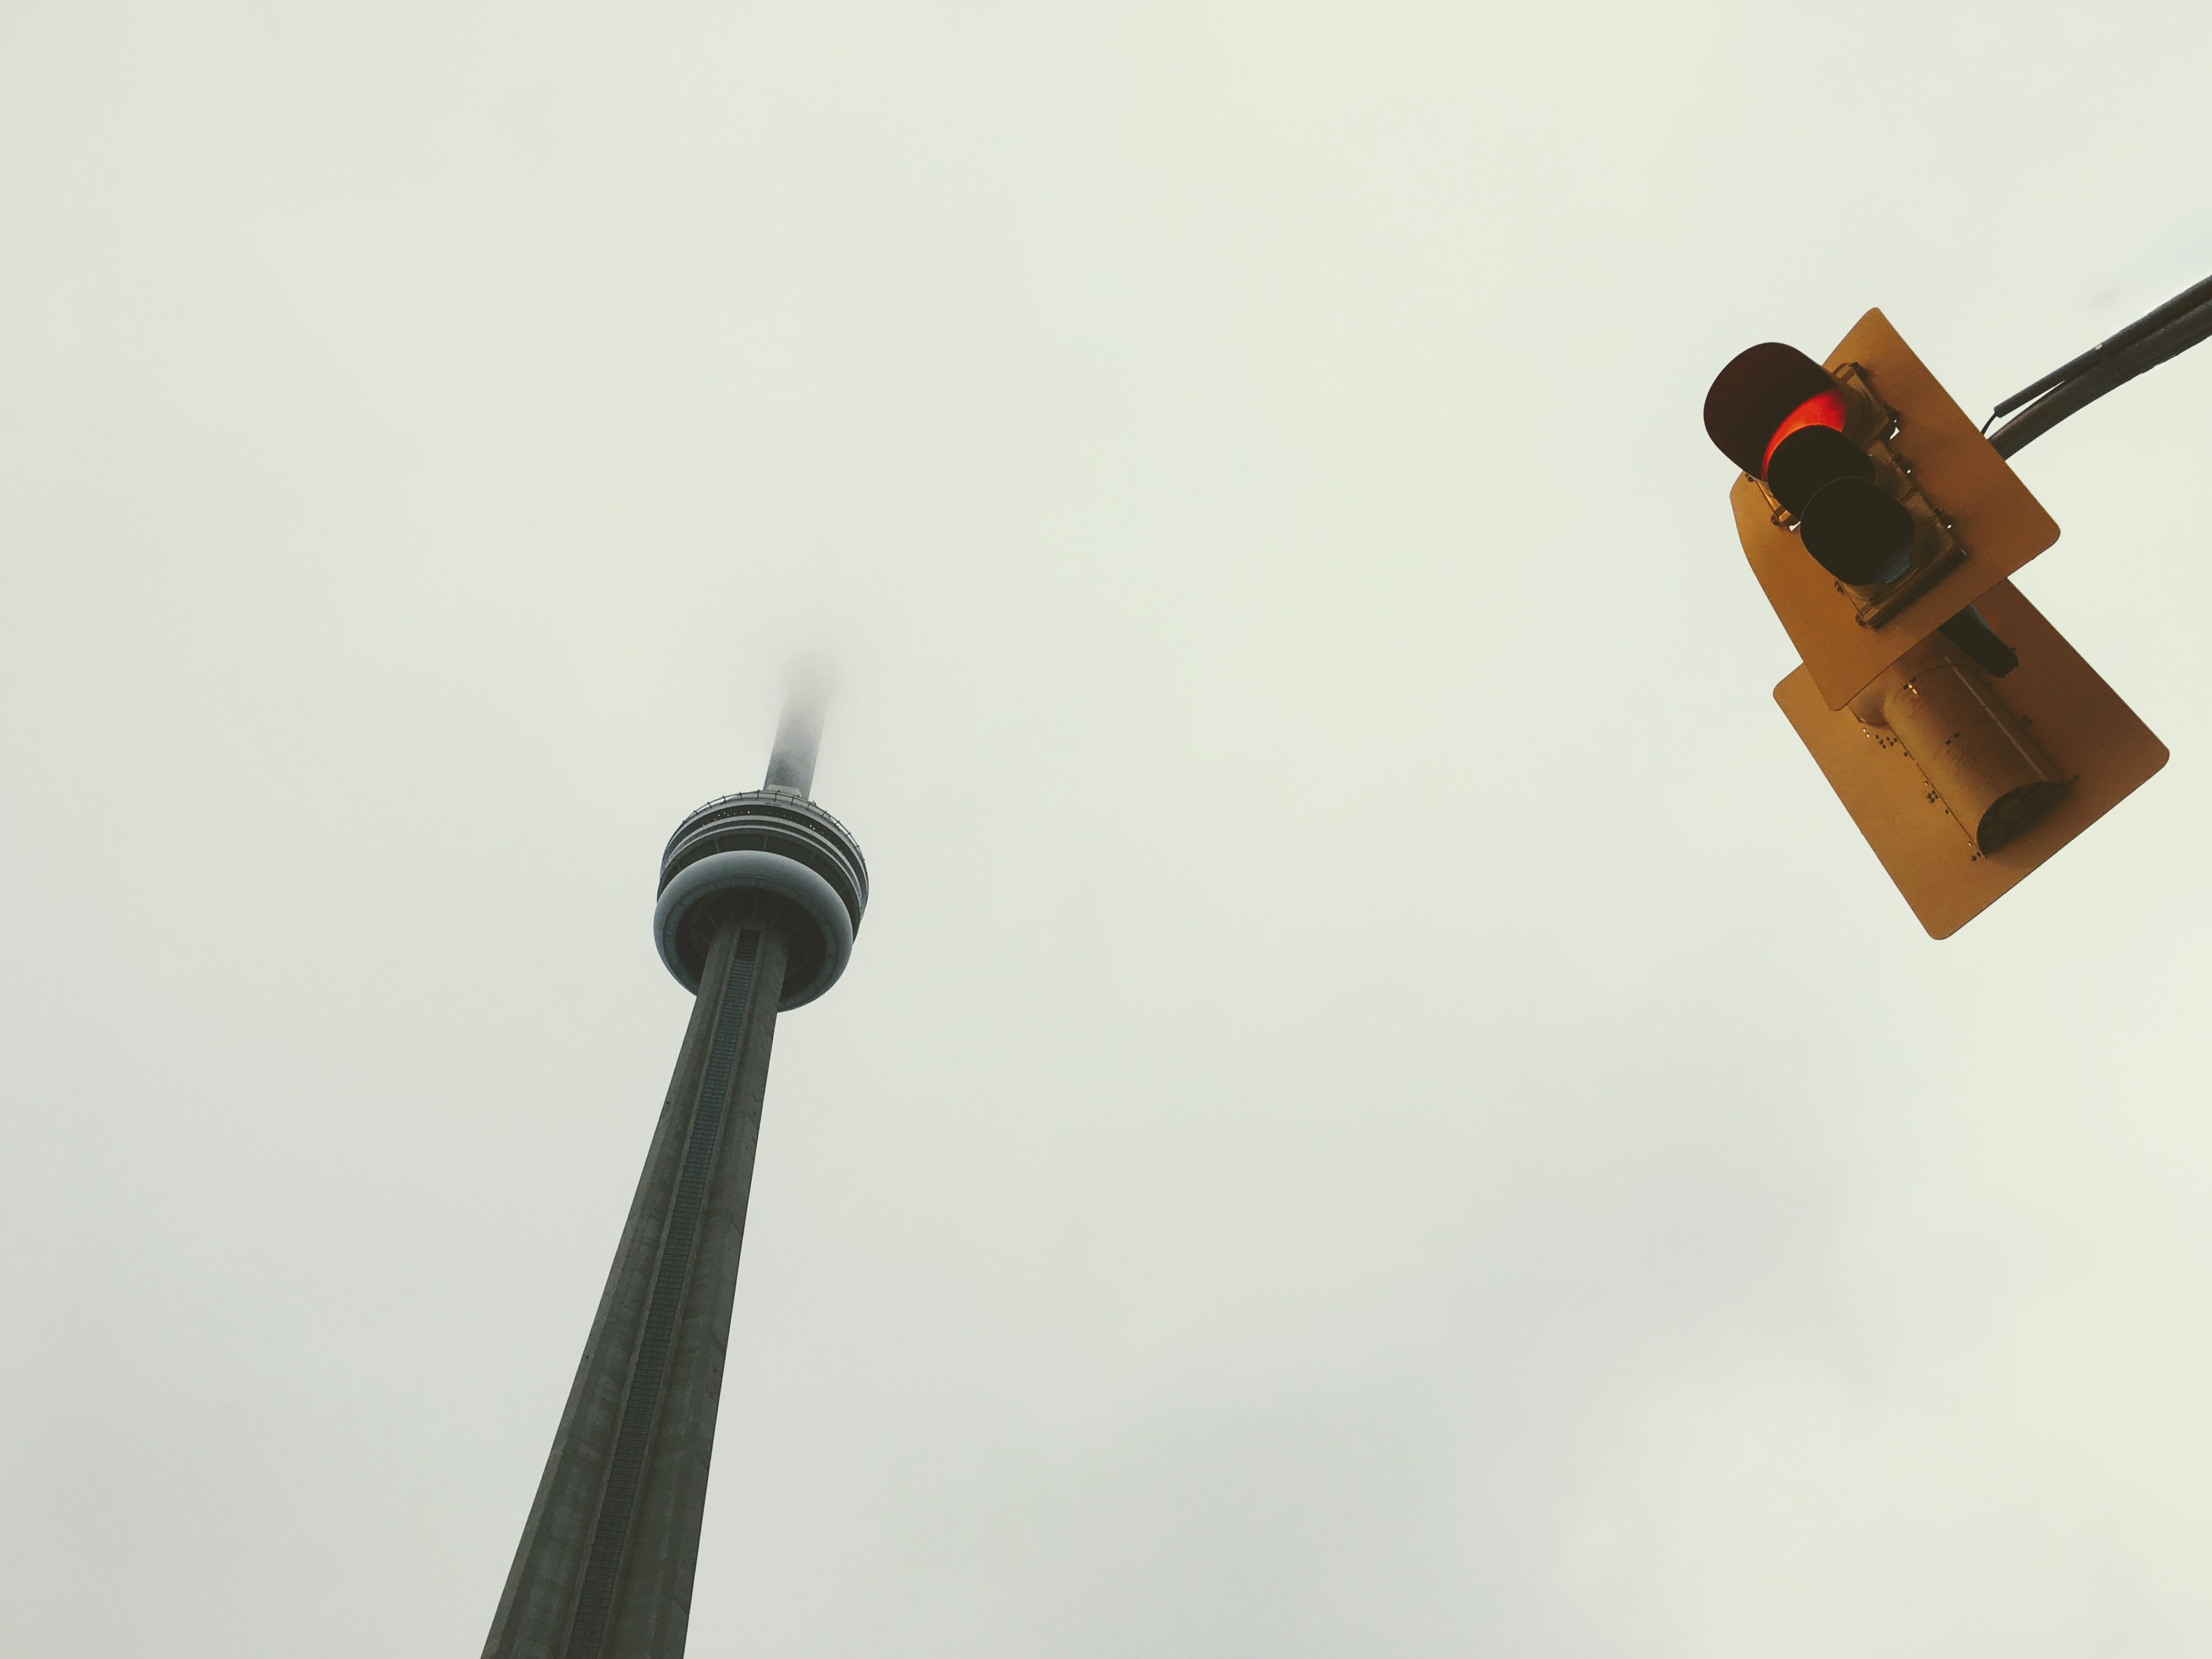 Tourist shot of CN Tower in Toronto at the Entertainment District